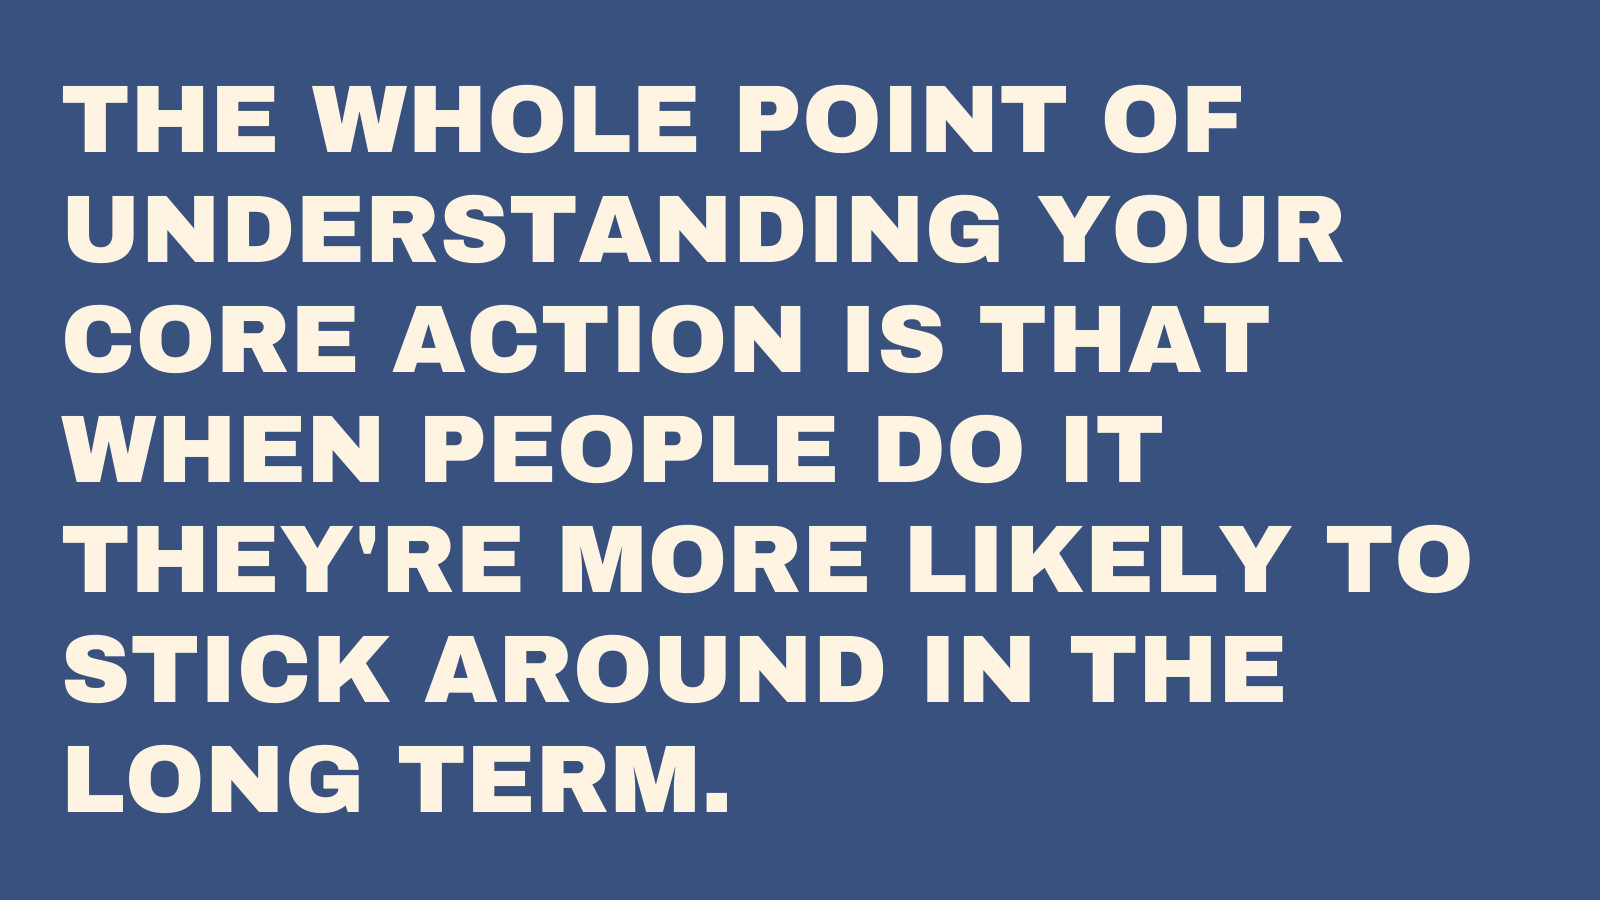 The whole point of a core action is that when people do it they're more likely to continue using your product in the long run.